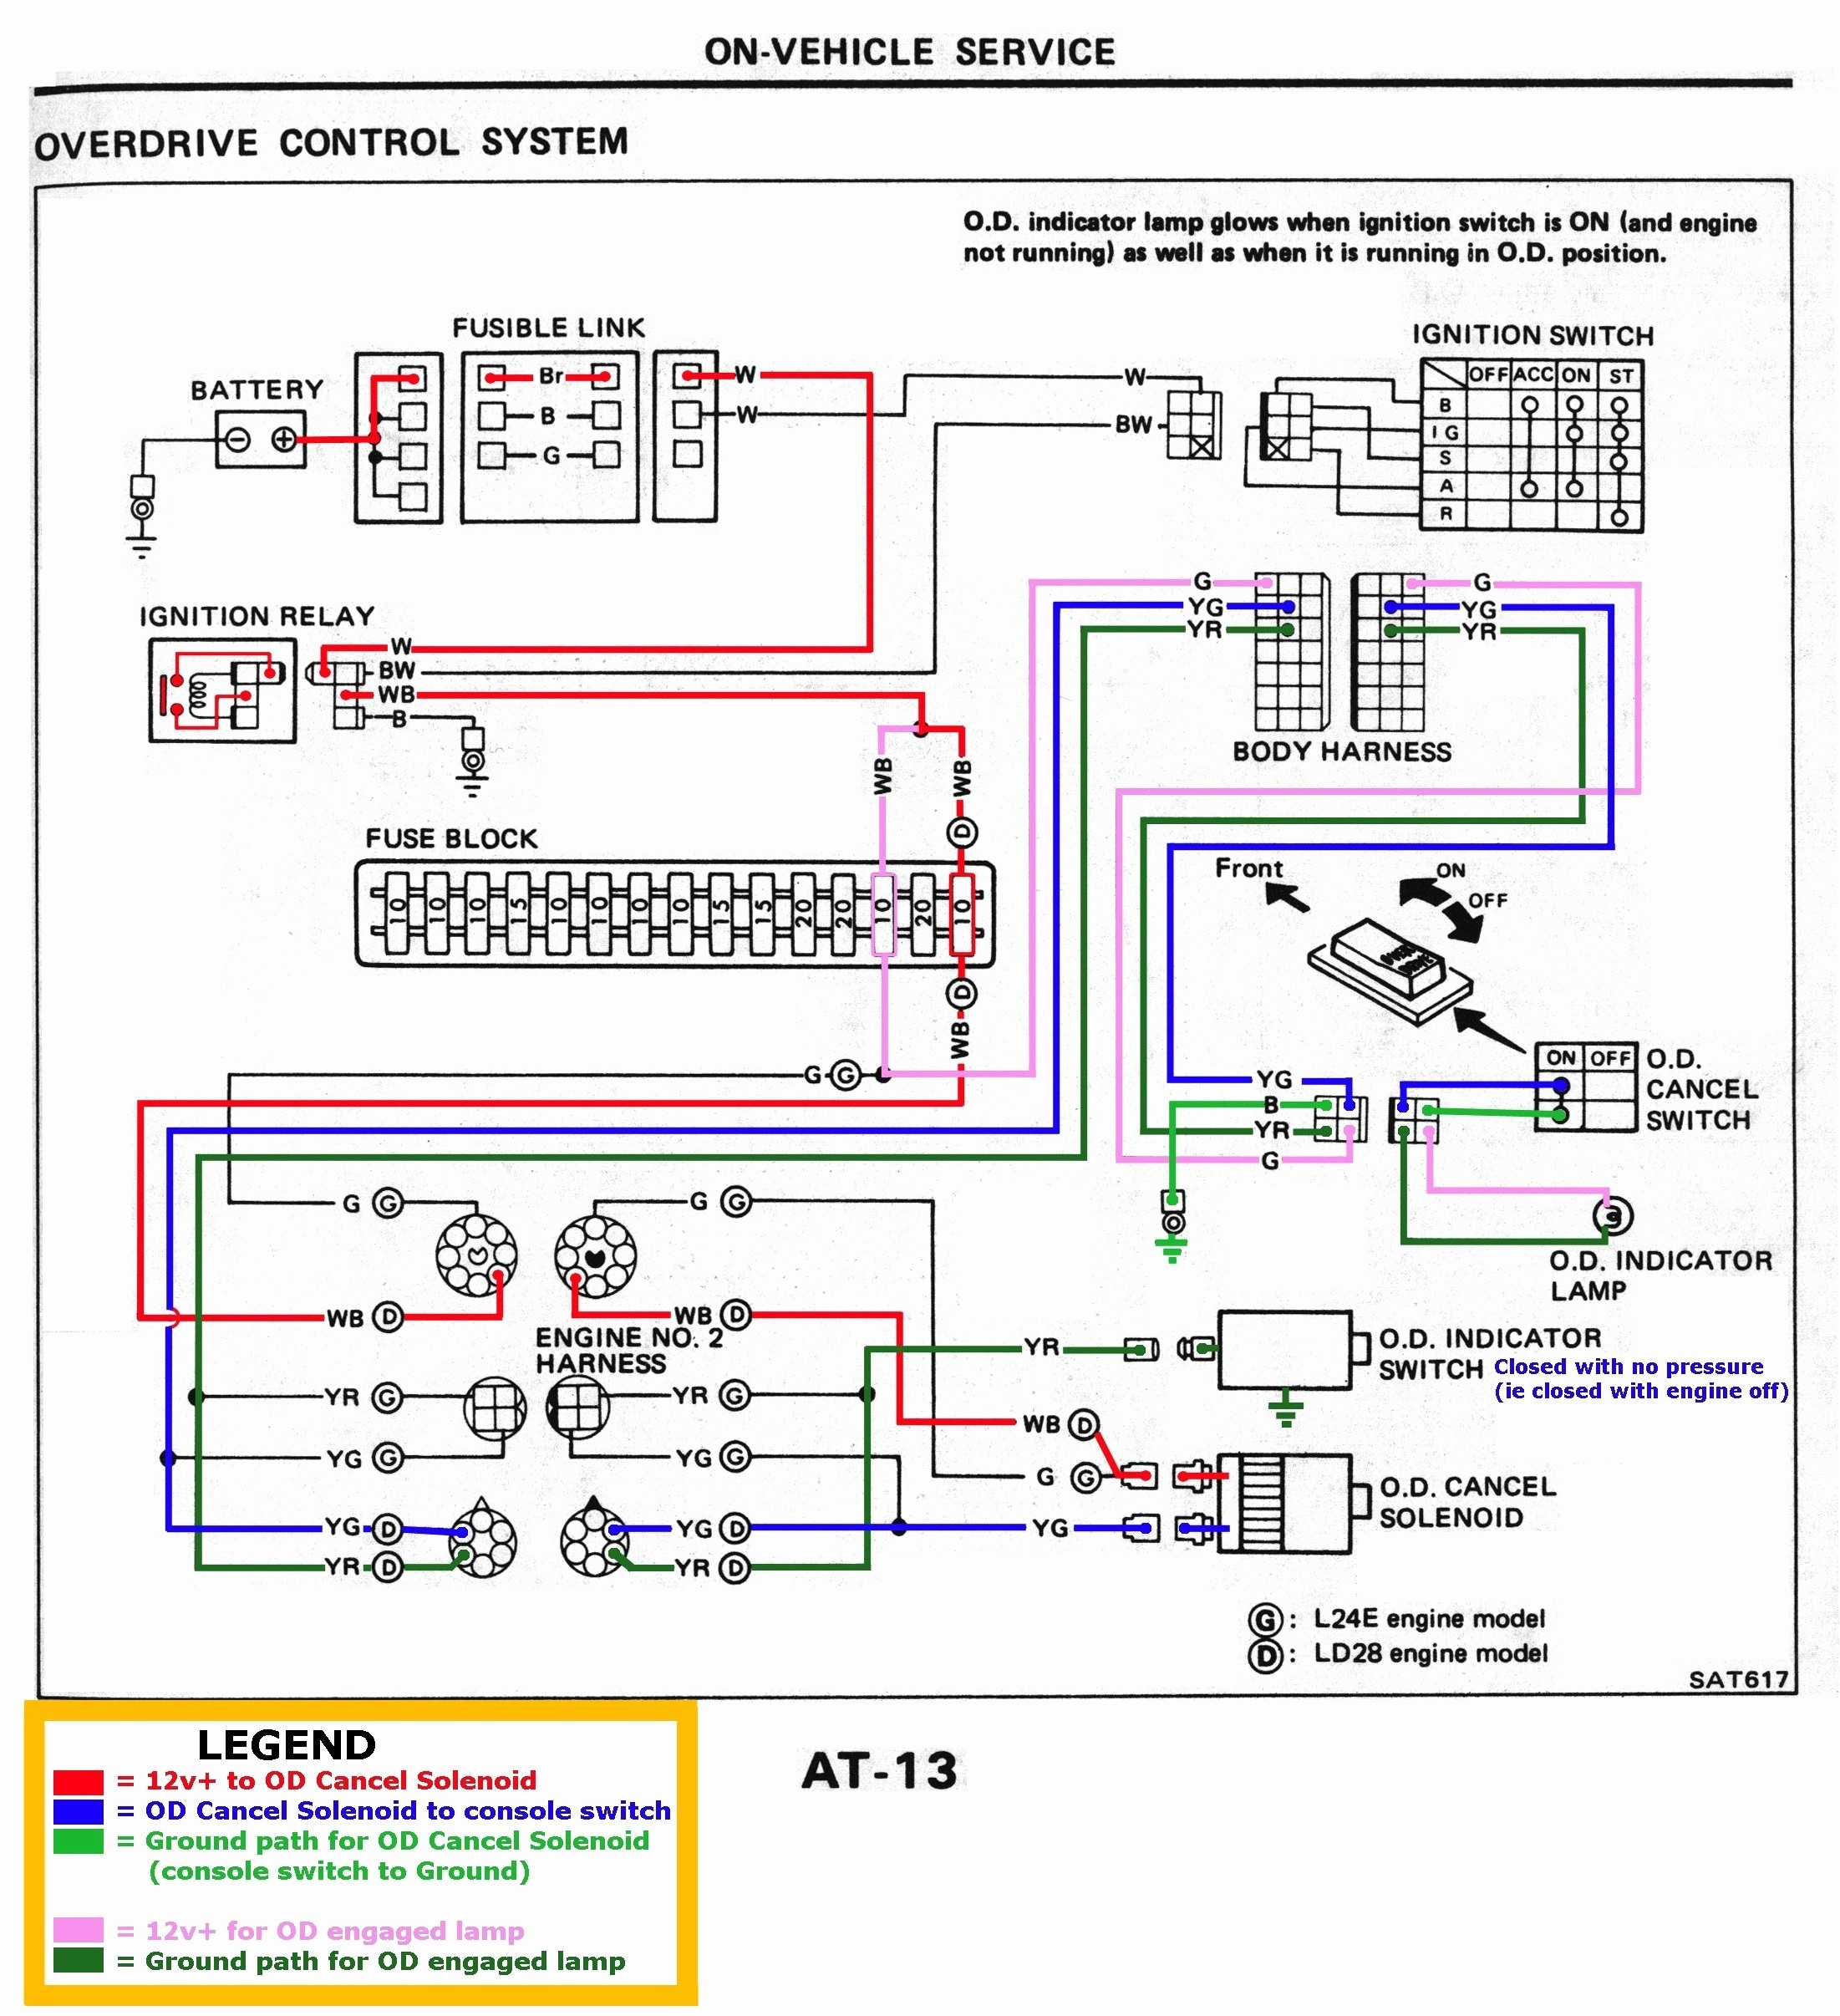 Pressure Switch Wiring Diagram - Wiring Diagram for Pressure Switch Air Pressor New Square D Air Pressor Pressure Switch Wiring 20m